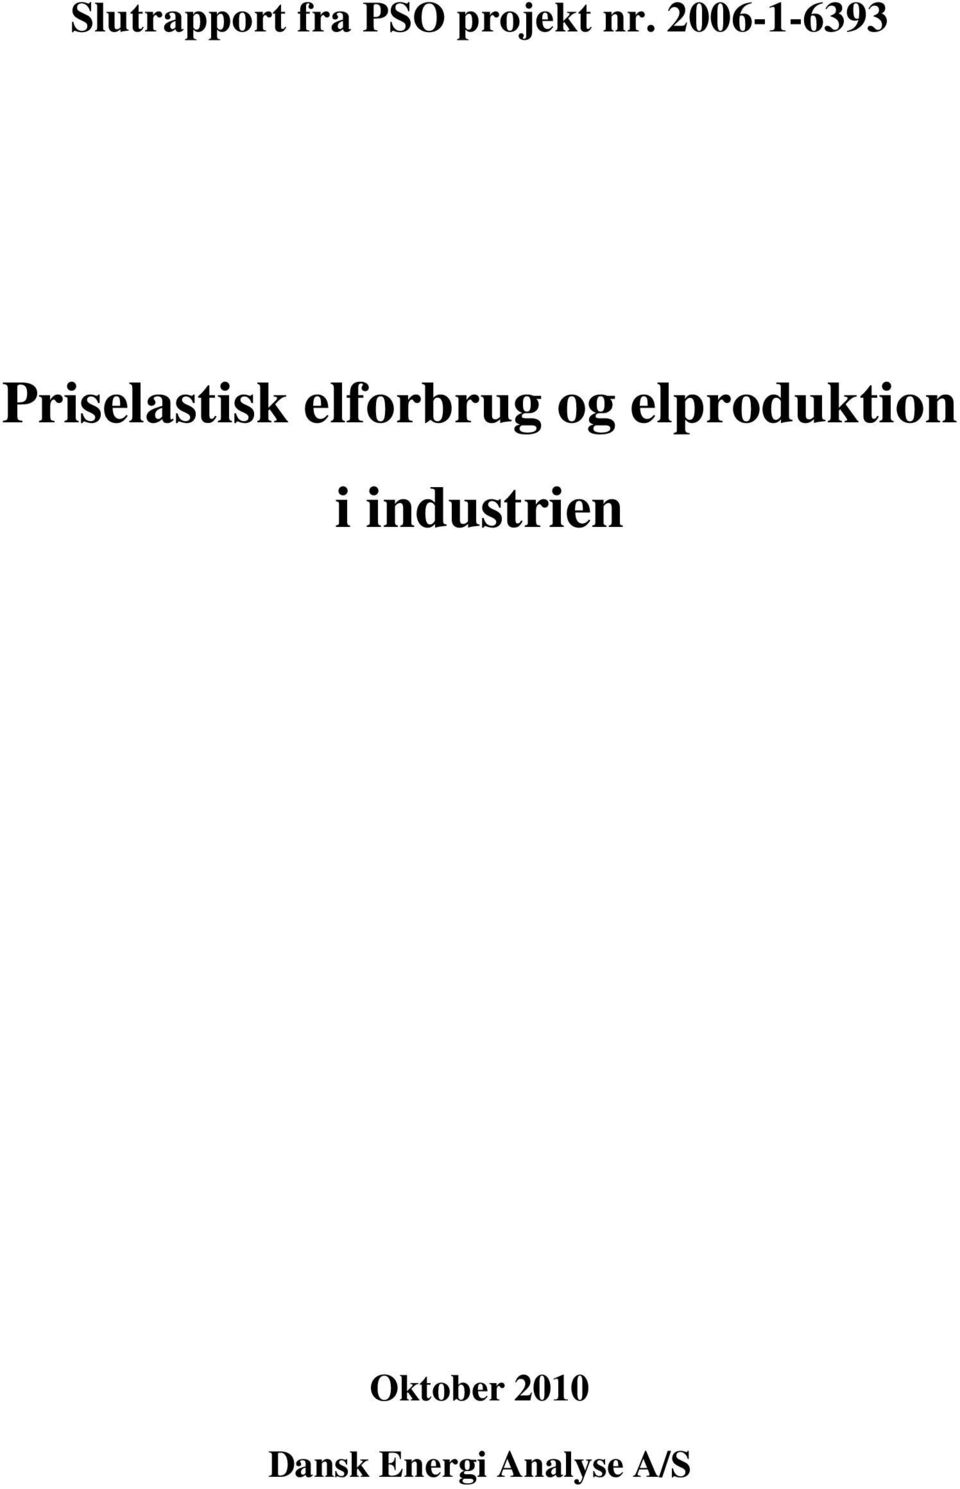 og elproduktion i industrien